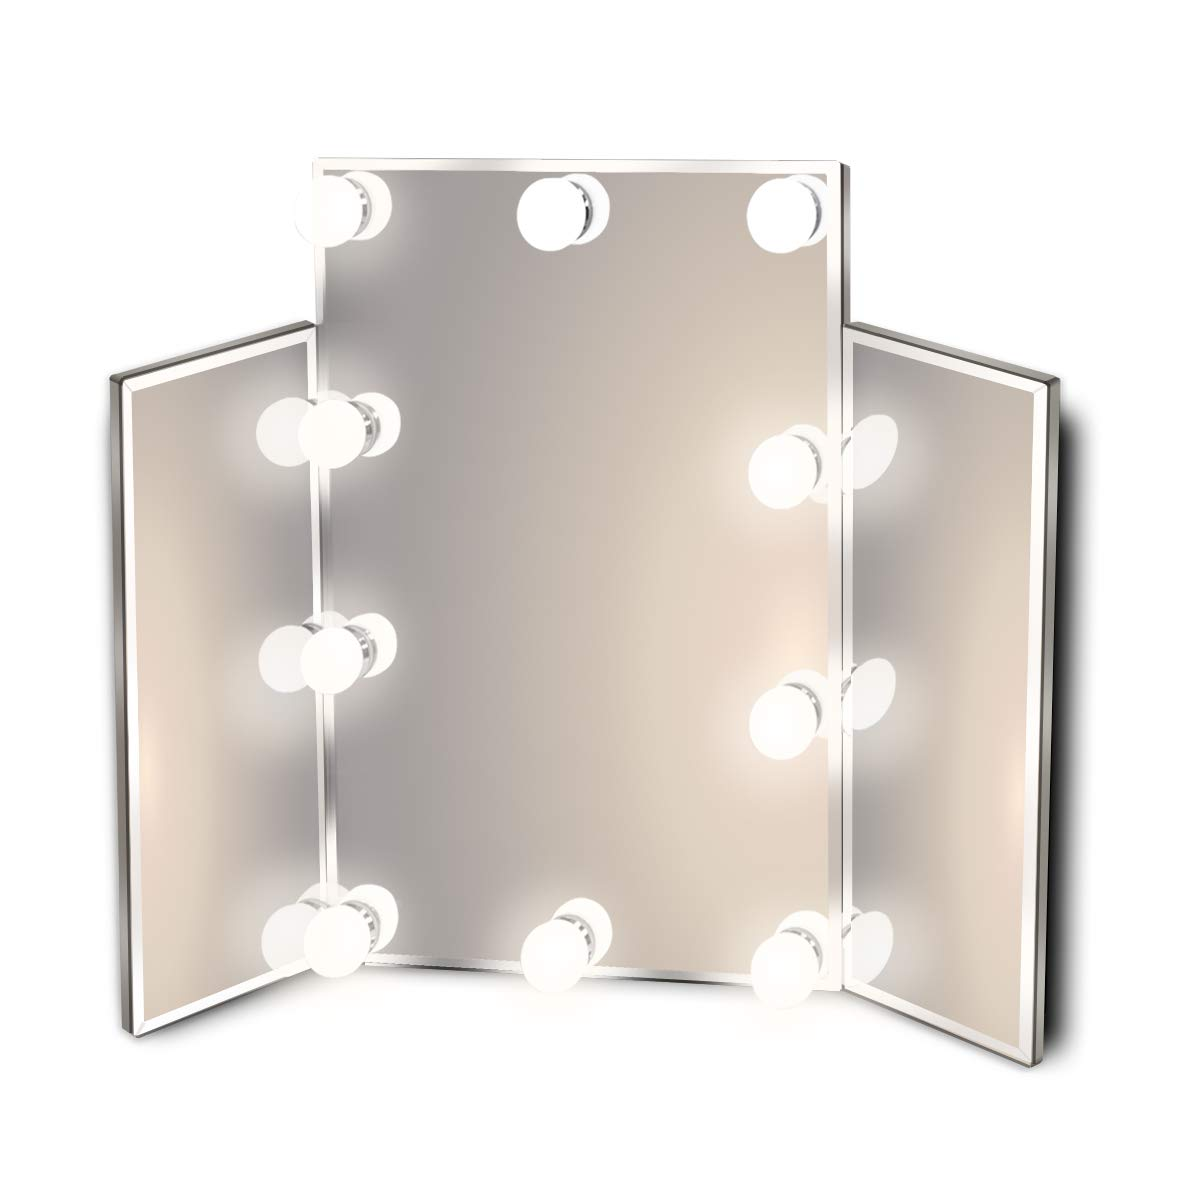 Hollywood Lighted Vanity Makeup Mirror with Bright LED Lights, Light-up Frameless Dressing Table 3-Way Cosmetic Mirror with 10 Dimmable Bulbs, Multiple Color Modes, Table-Top or Wall Mount, Tri-Fold by Waneway